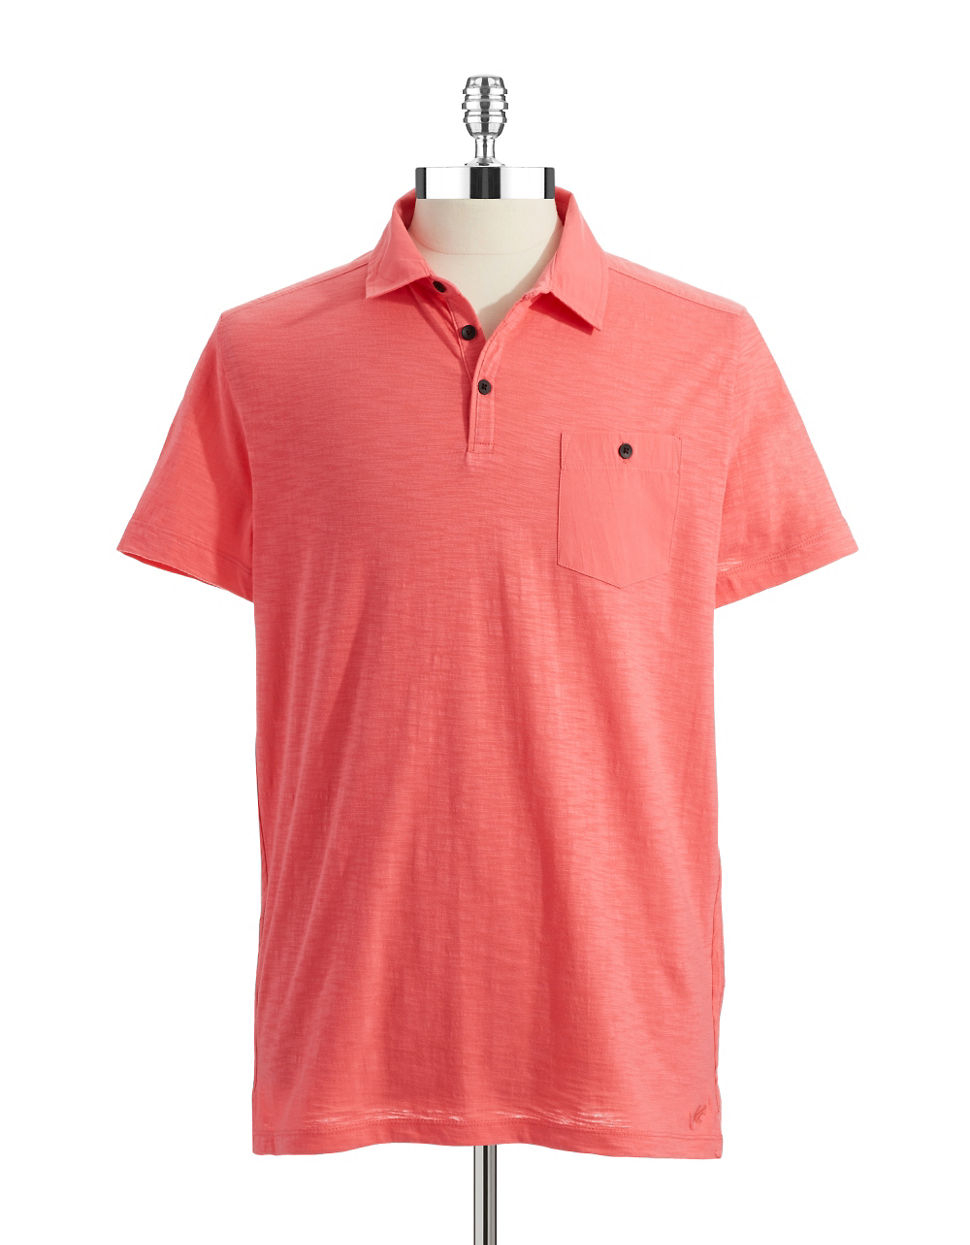 Kenneth cole pocket polo shirt in orange for men melon for Two pocket polo shirt